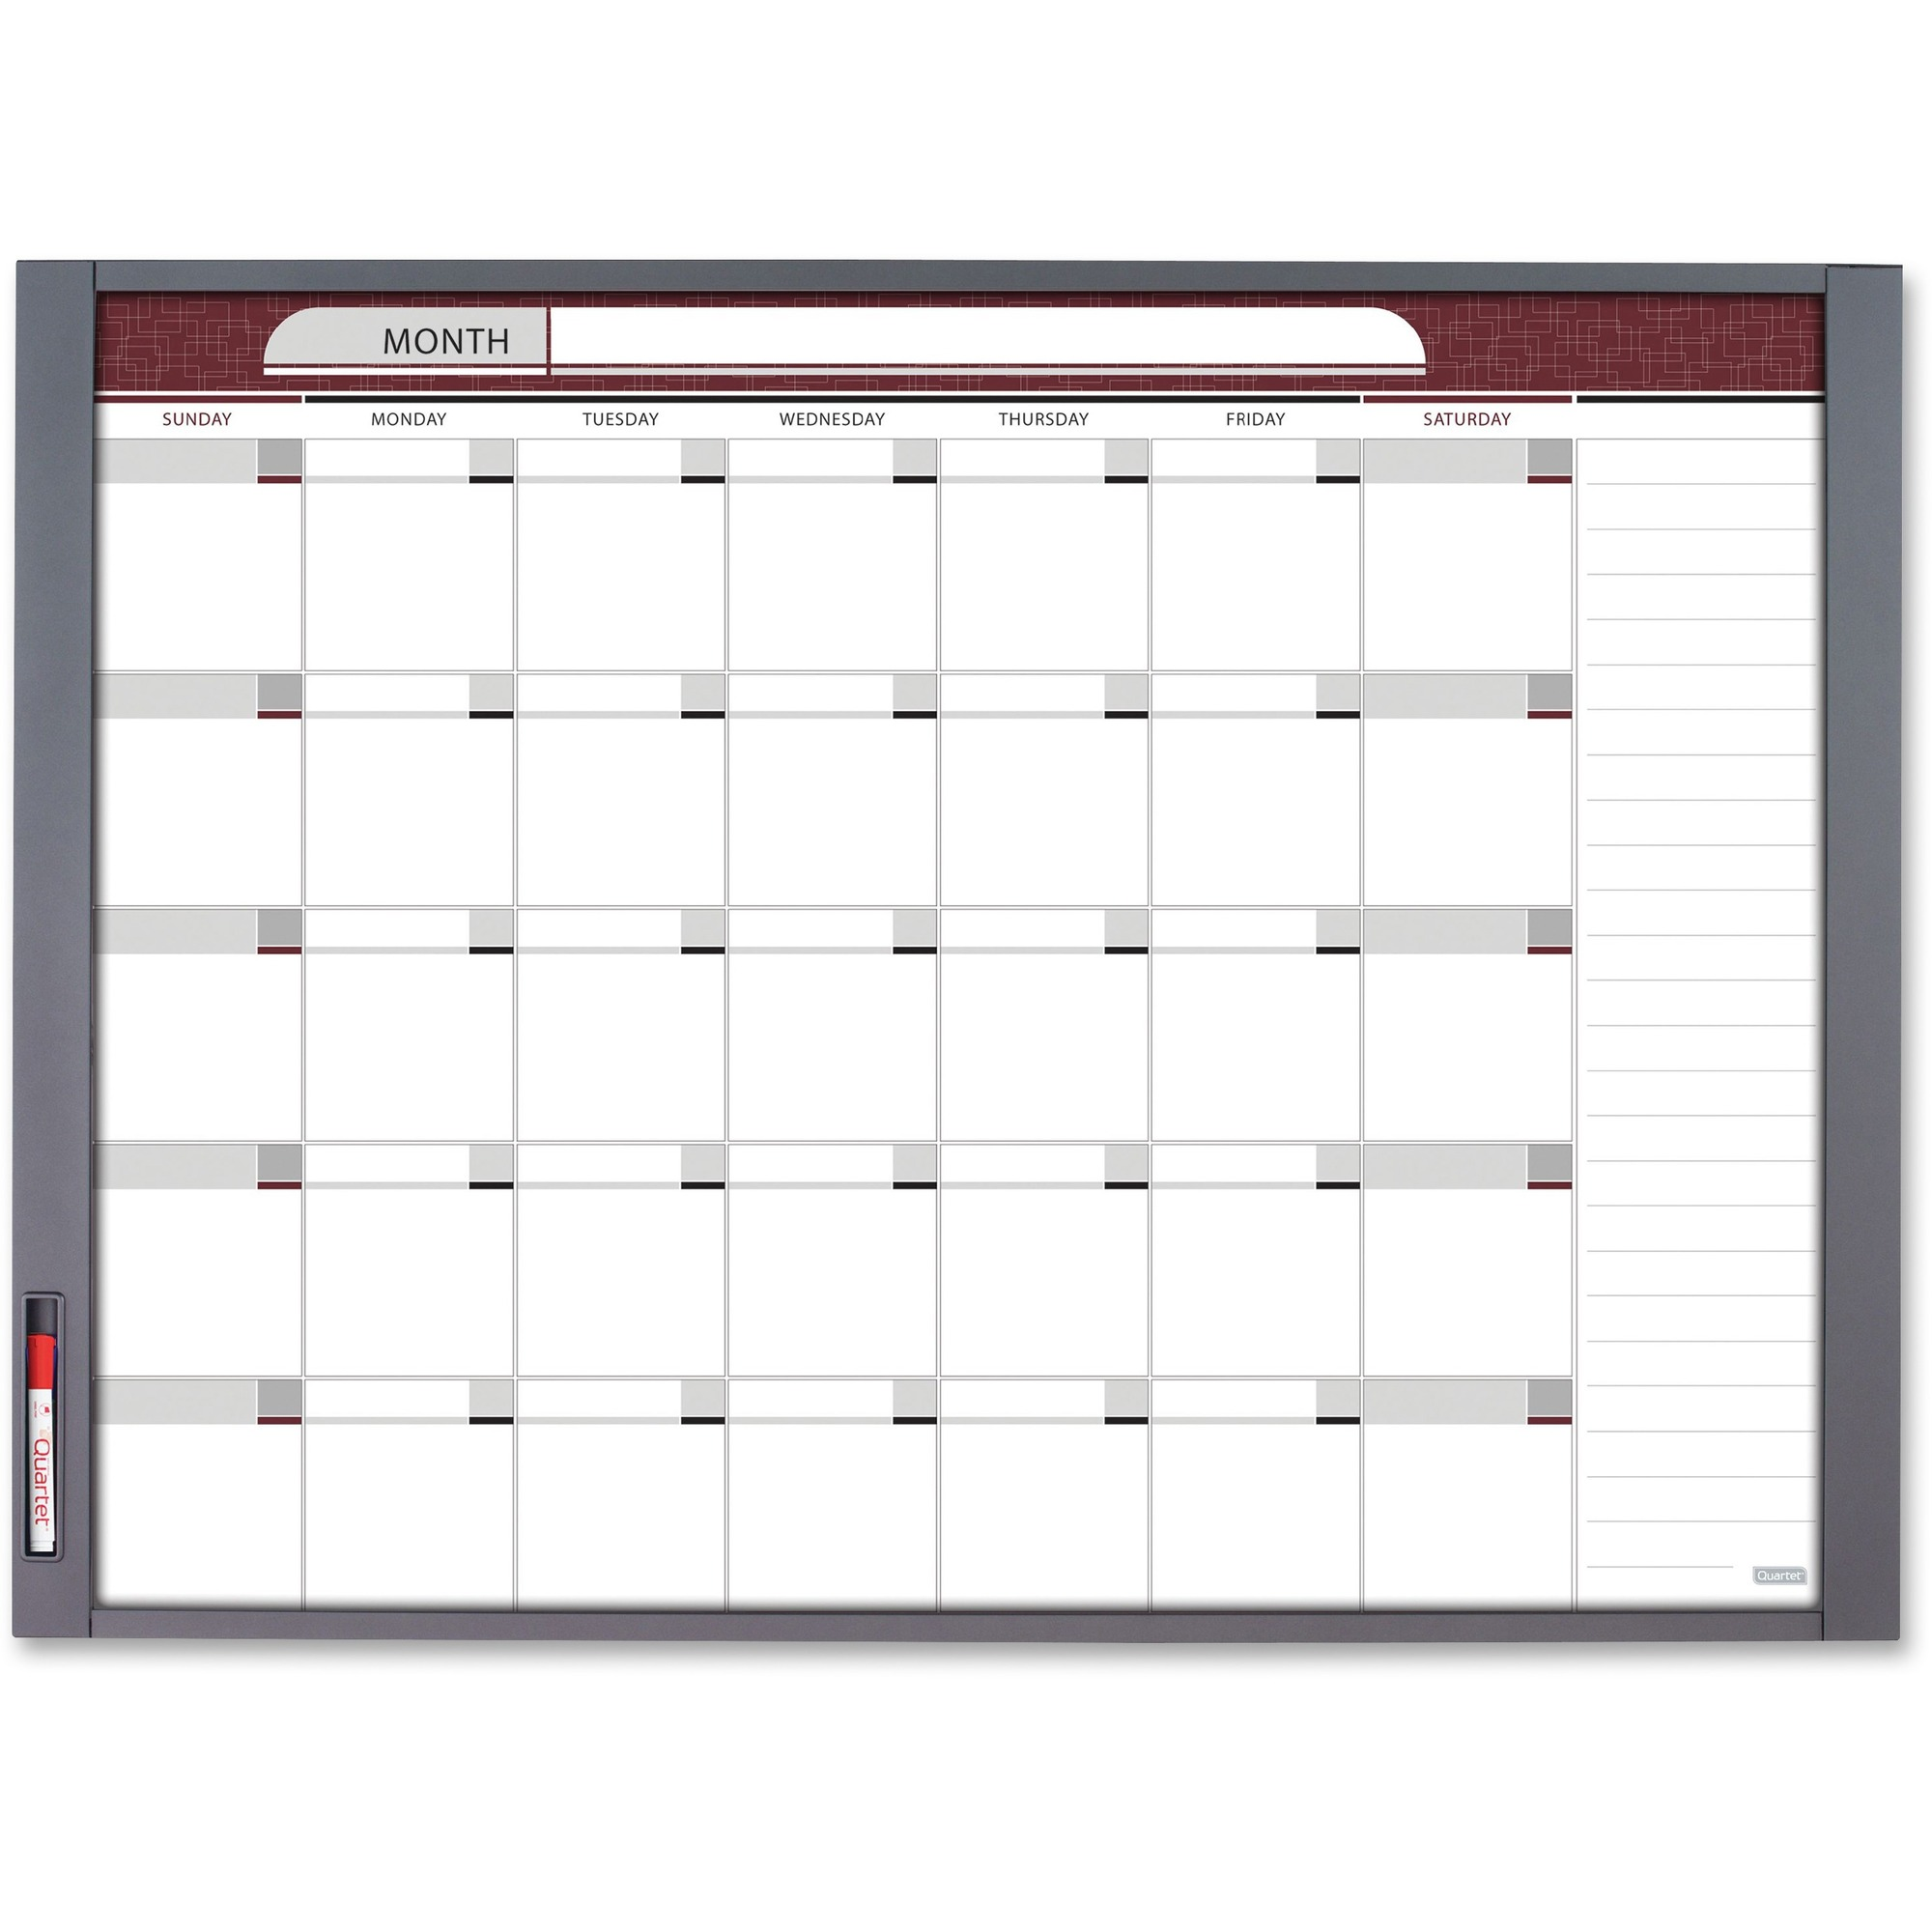 Acco Brands Corporation Quartet® Inview Custom Whiteboard - 47.5 (4 Ft) Width X 35 (2.9 Ft) Height - White Steel Surface - Graphite Frame - Rectangle - Horizontal/vertical - Assembly Required - 1 / Each